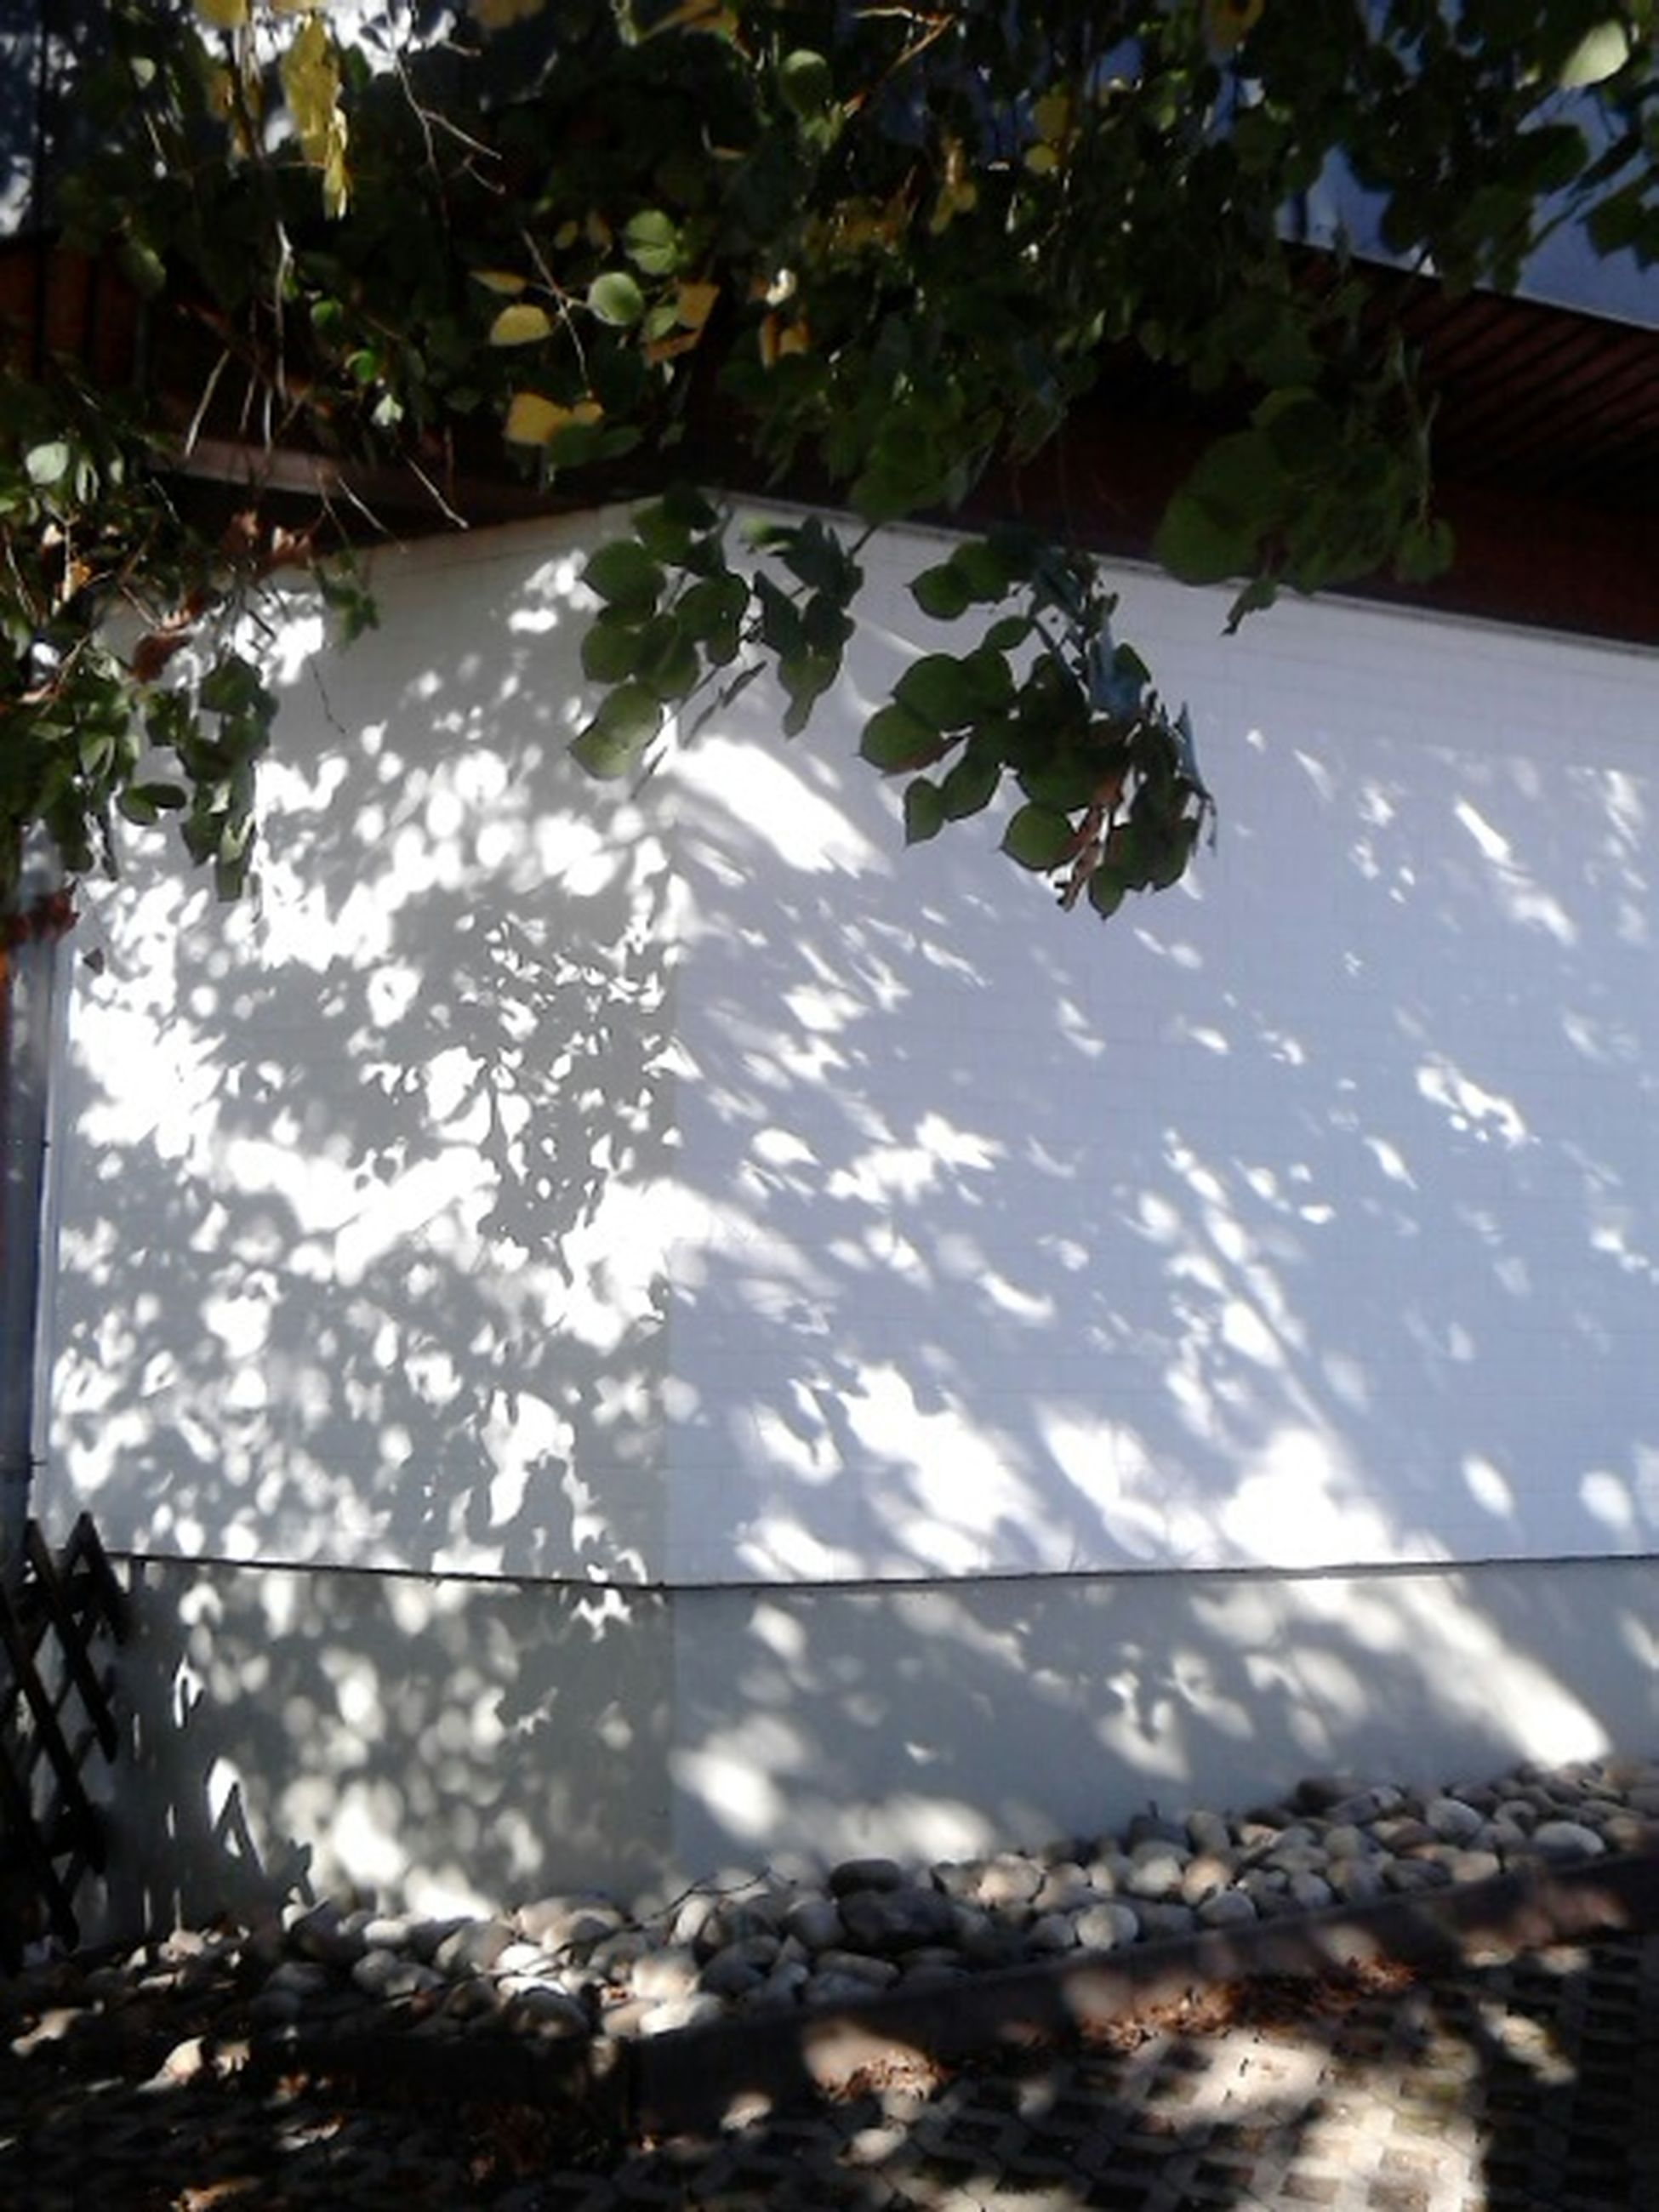 tree, sunlight, built structure, building exterior, leaf, nature, architecture, growth, day, season, plant, no people, house, water, outdoors, tranquility, window, sky, reflection, glass - material